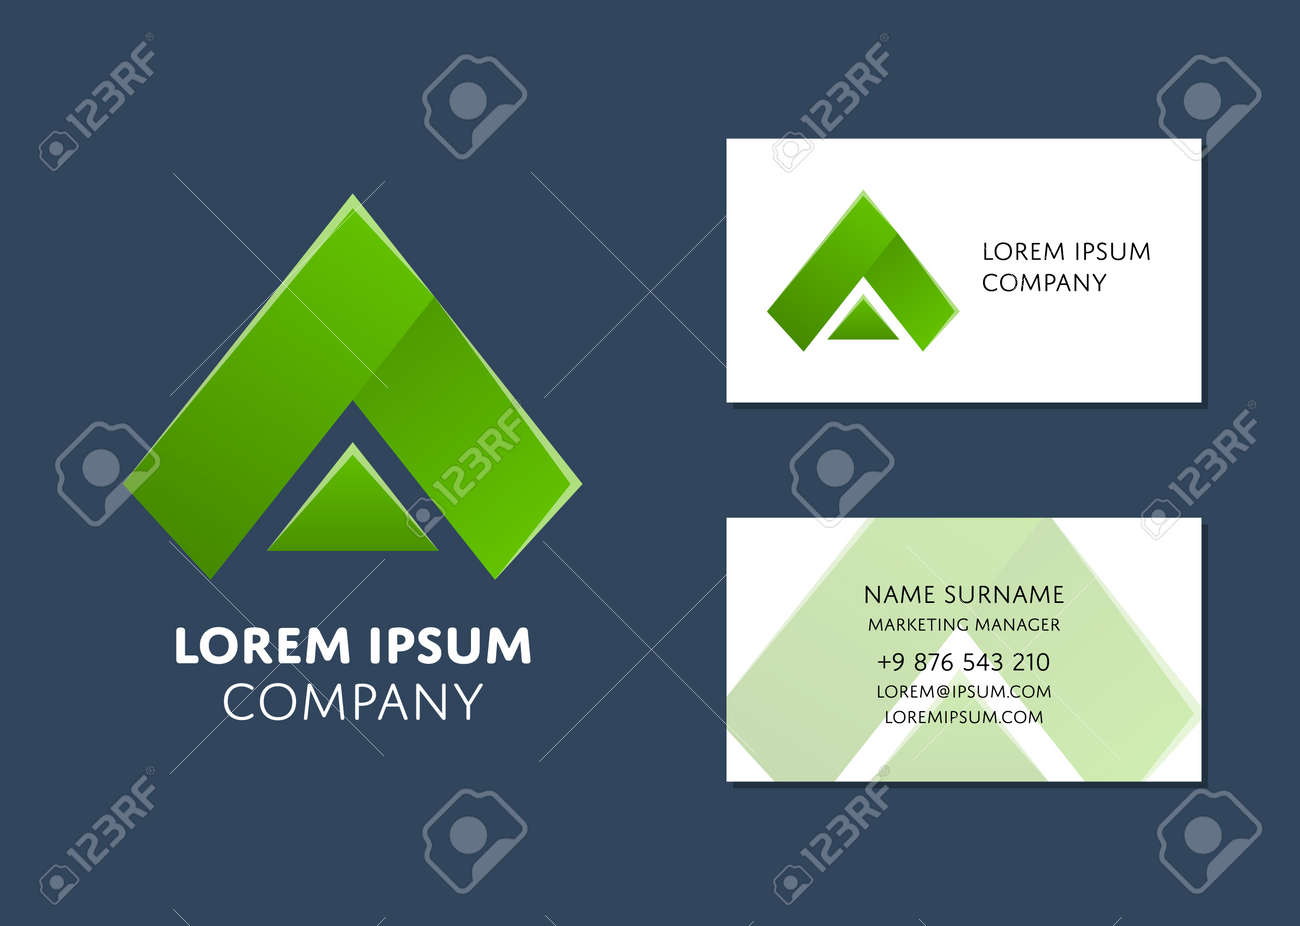 Creative Business Card Template With Green Triangle Icon. Name ...